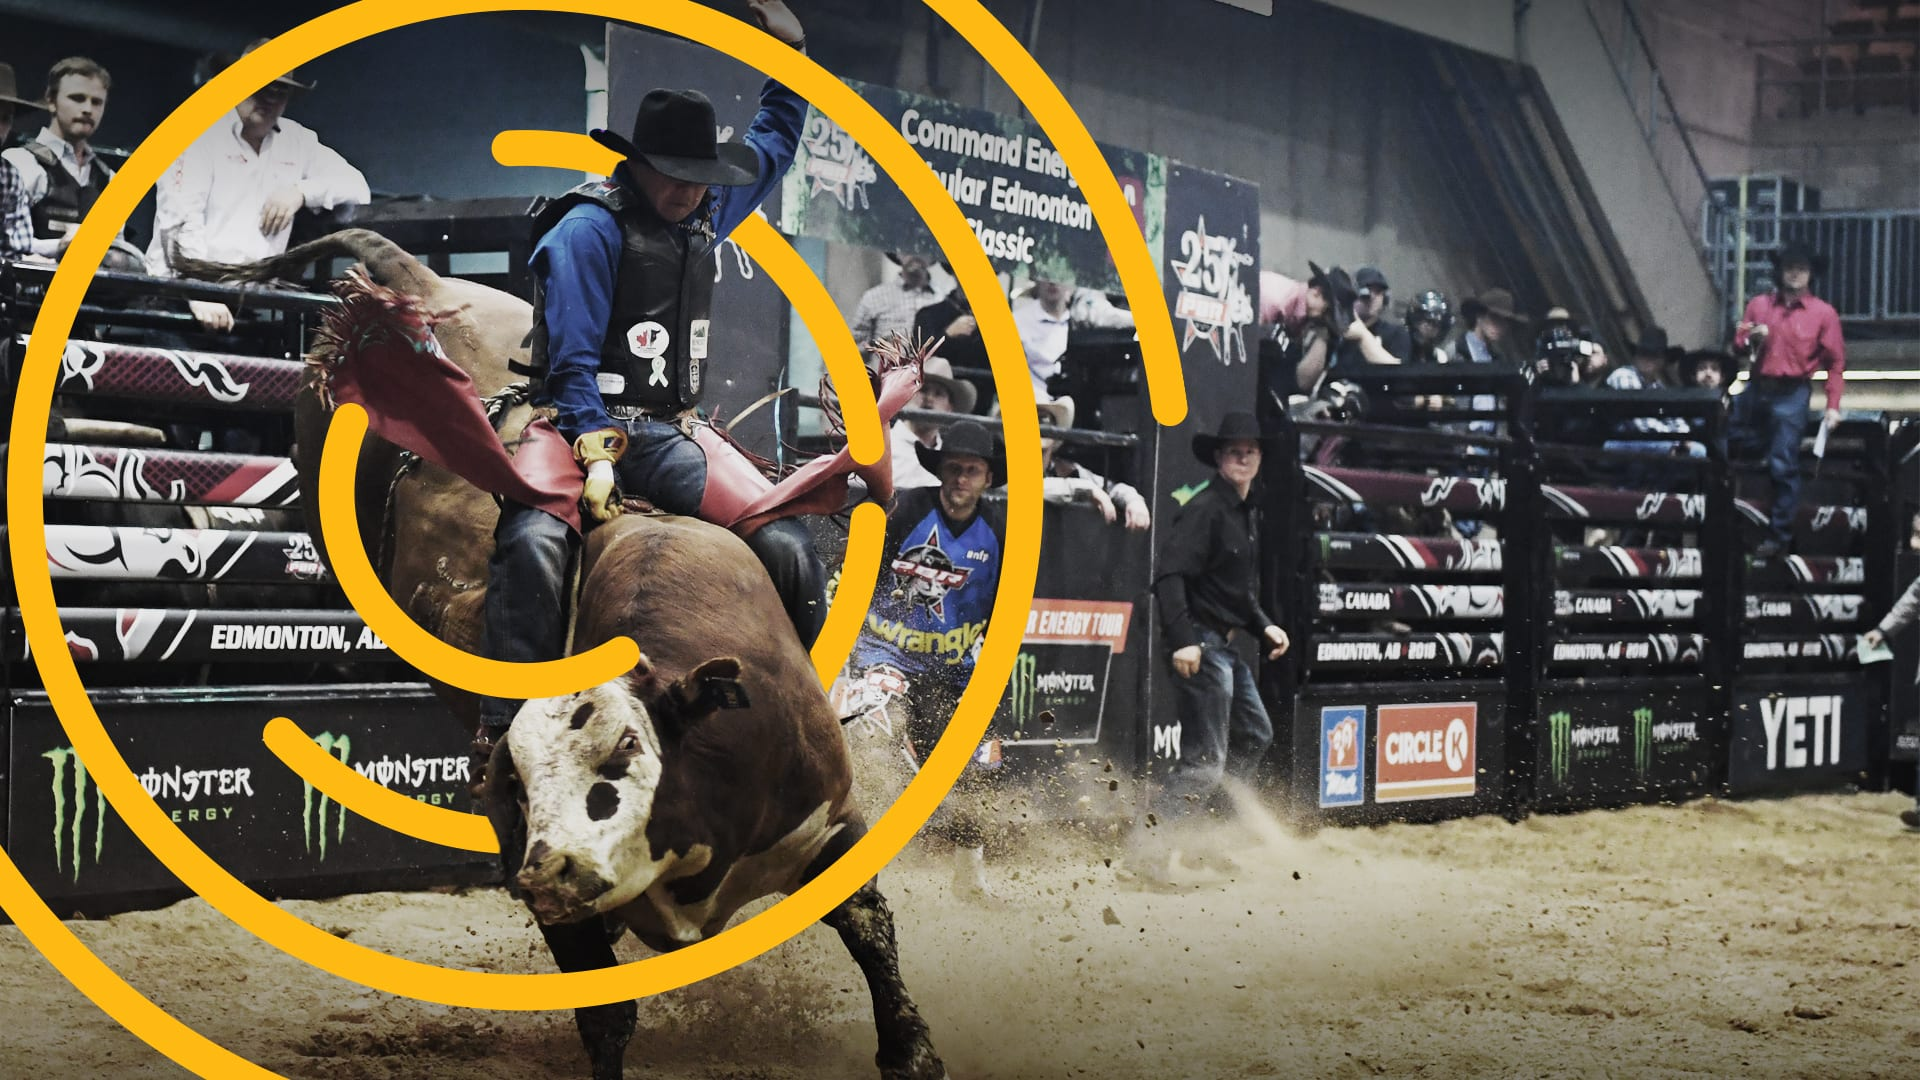 A-bull-rider-hangs-on-for-dear-life-amid-a-halo-of-excitemen